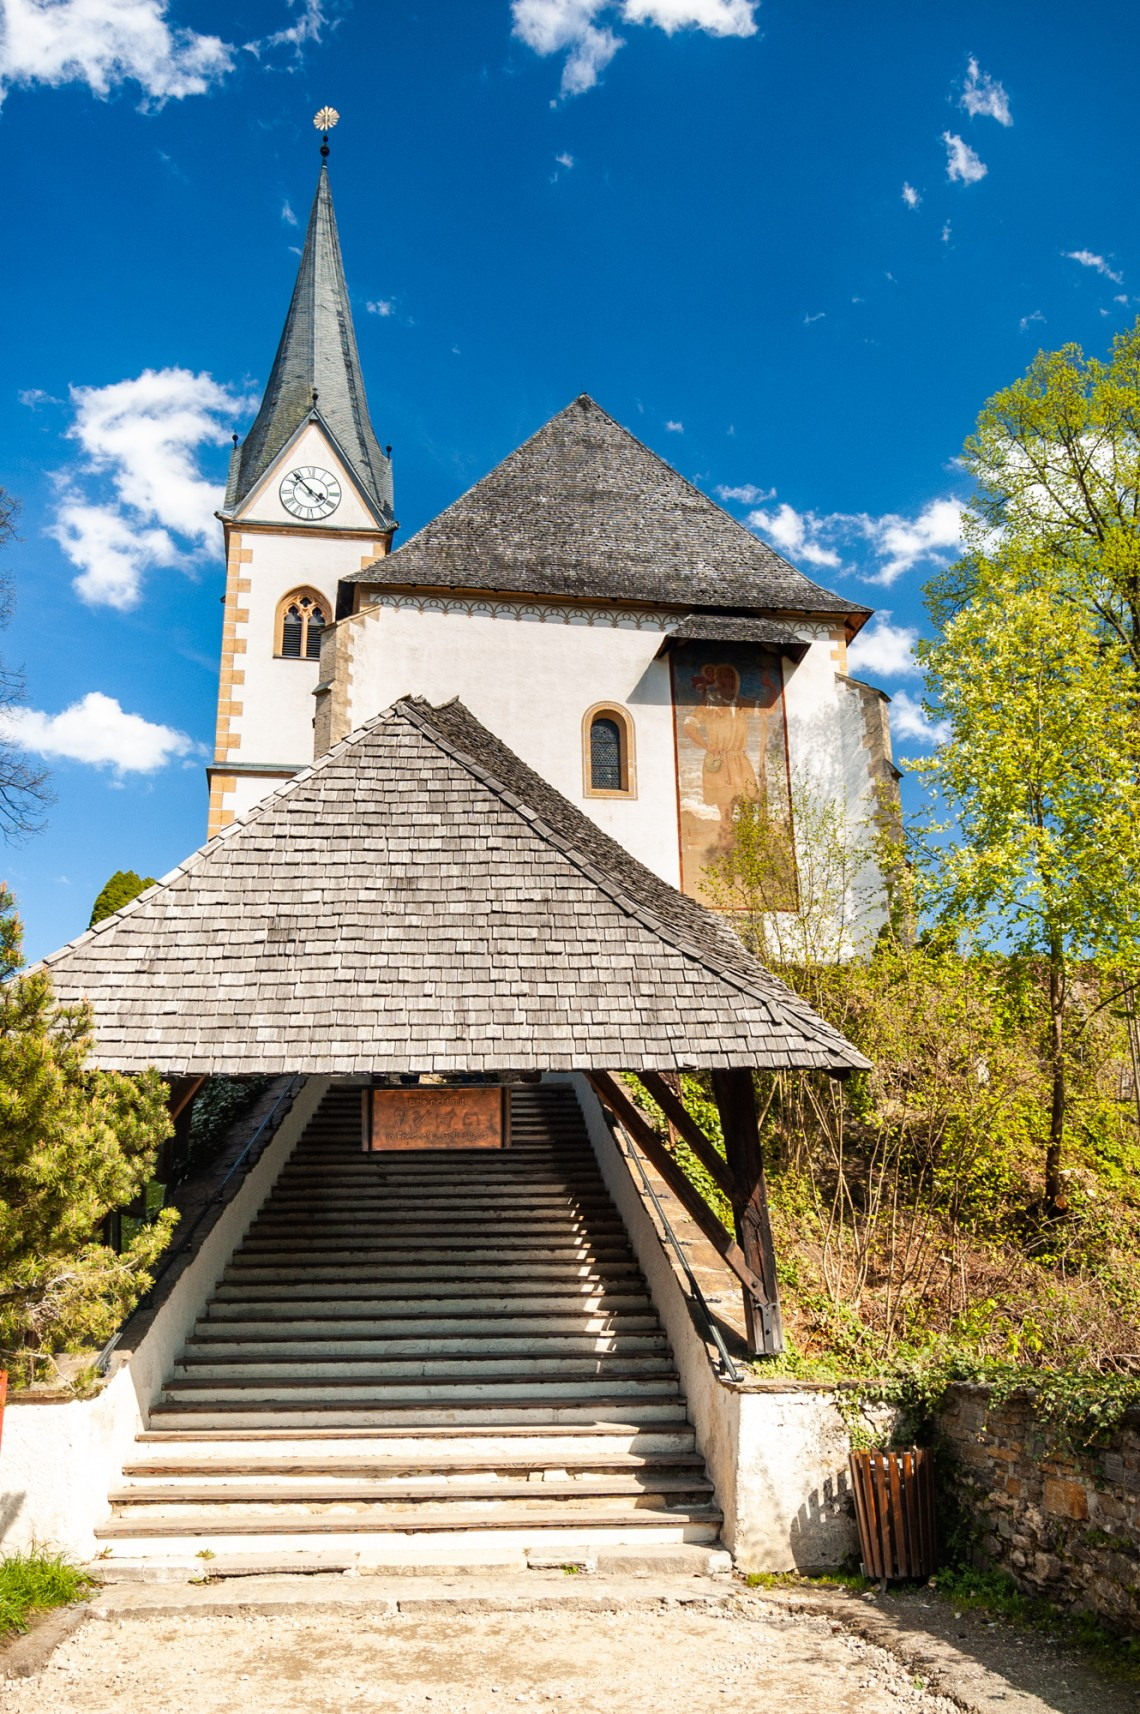 Entrance view of the Church in Maria Woerth, Austria